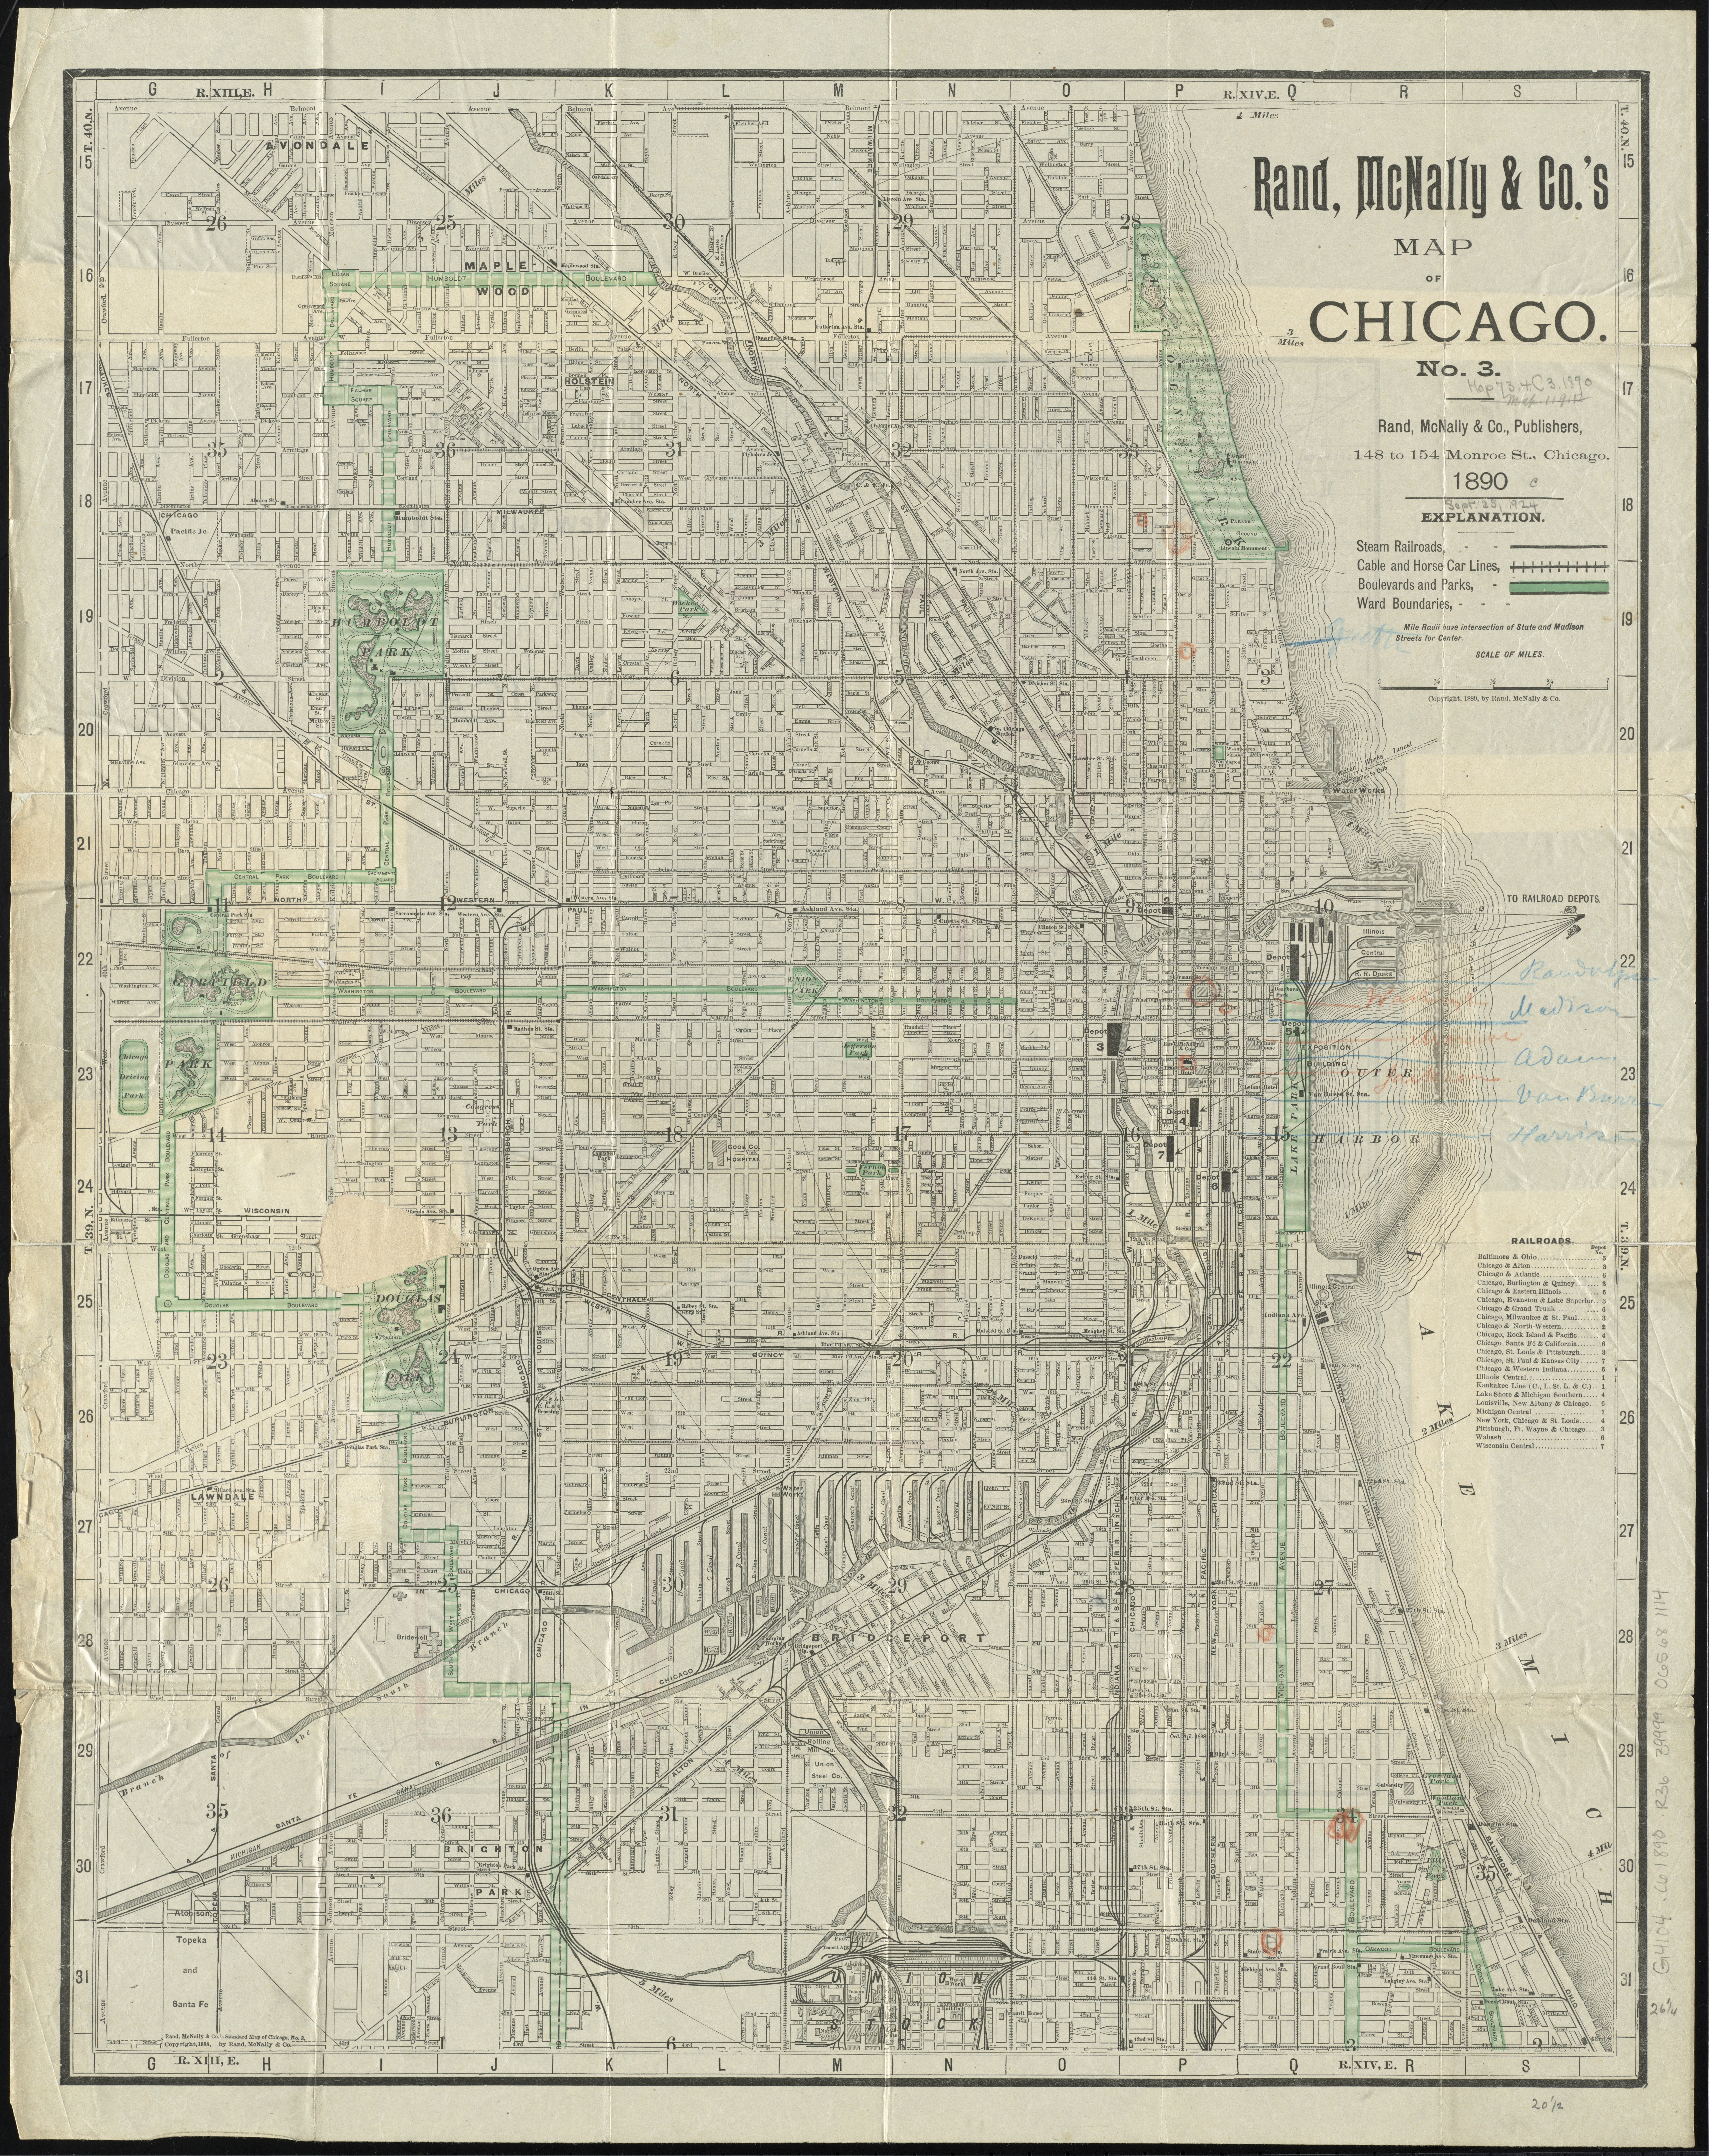 Chicago Map 1890 File:1890 Chicago map by Rand McNally.   Wikimedia Commons